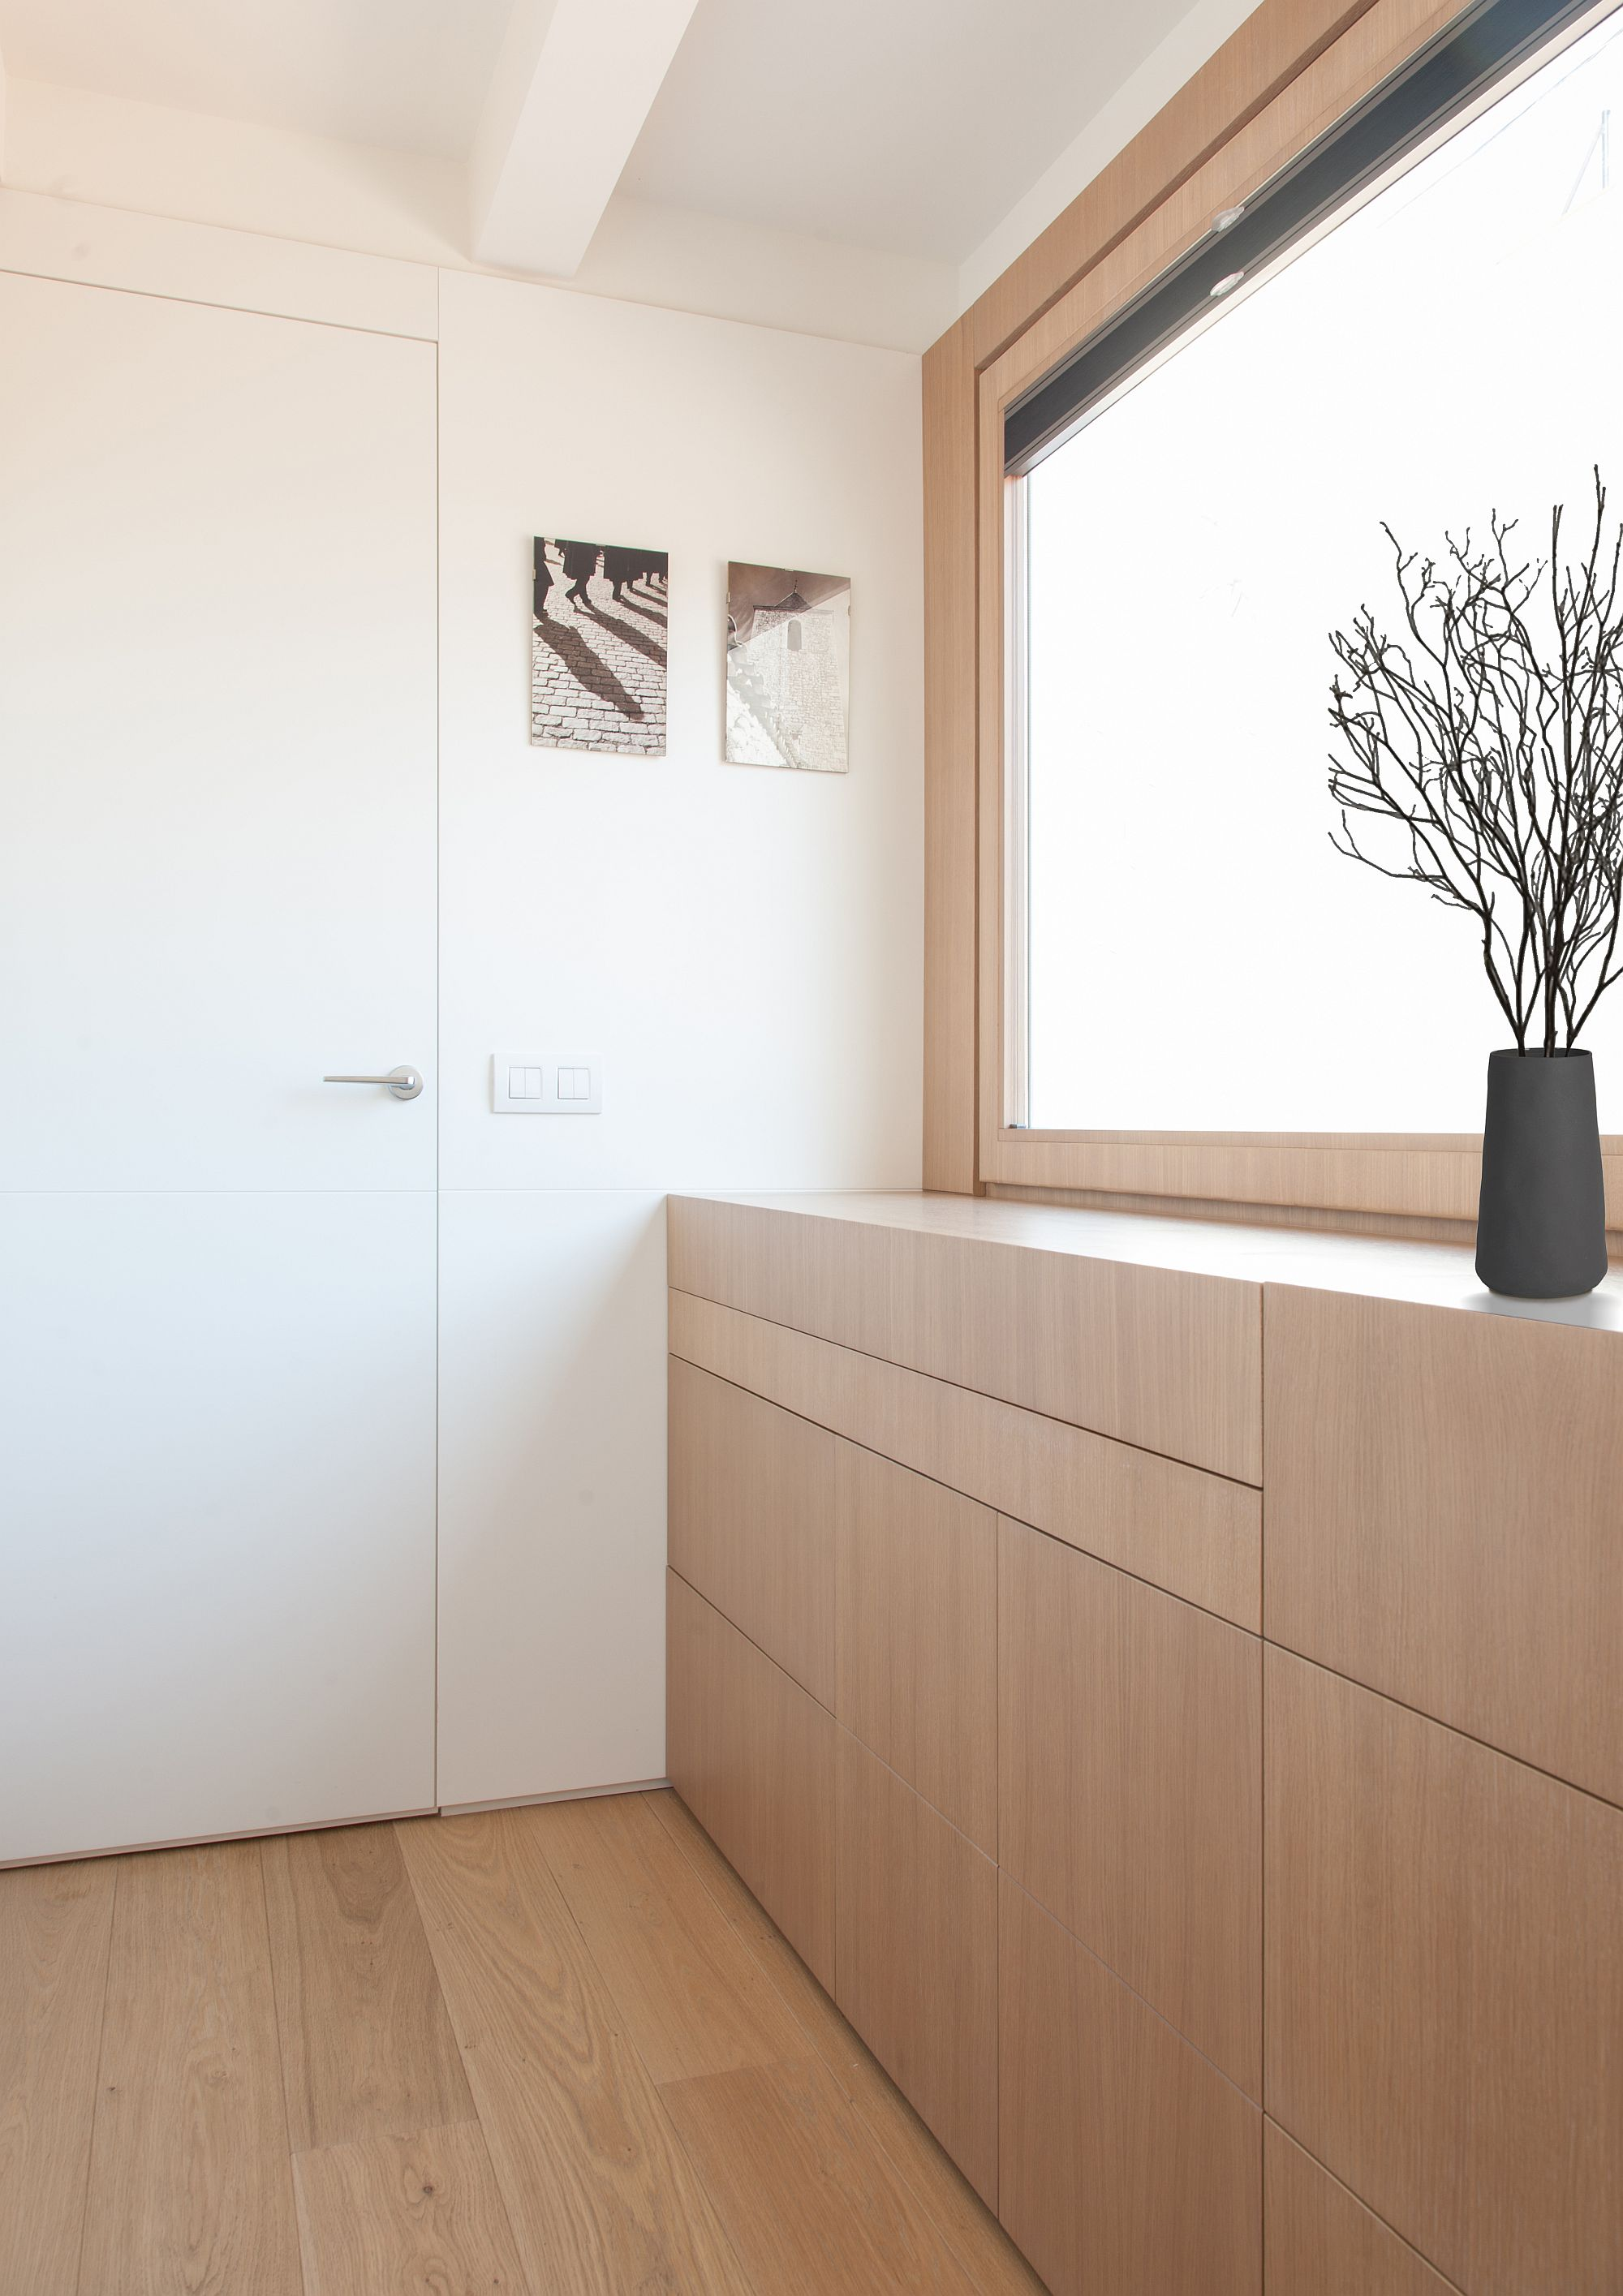 Work-desks-and-storage-units-can-all-be-concealed-with-ease